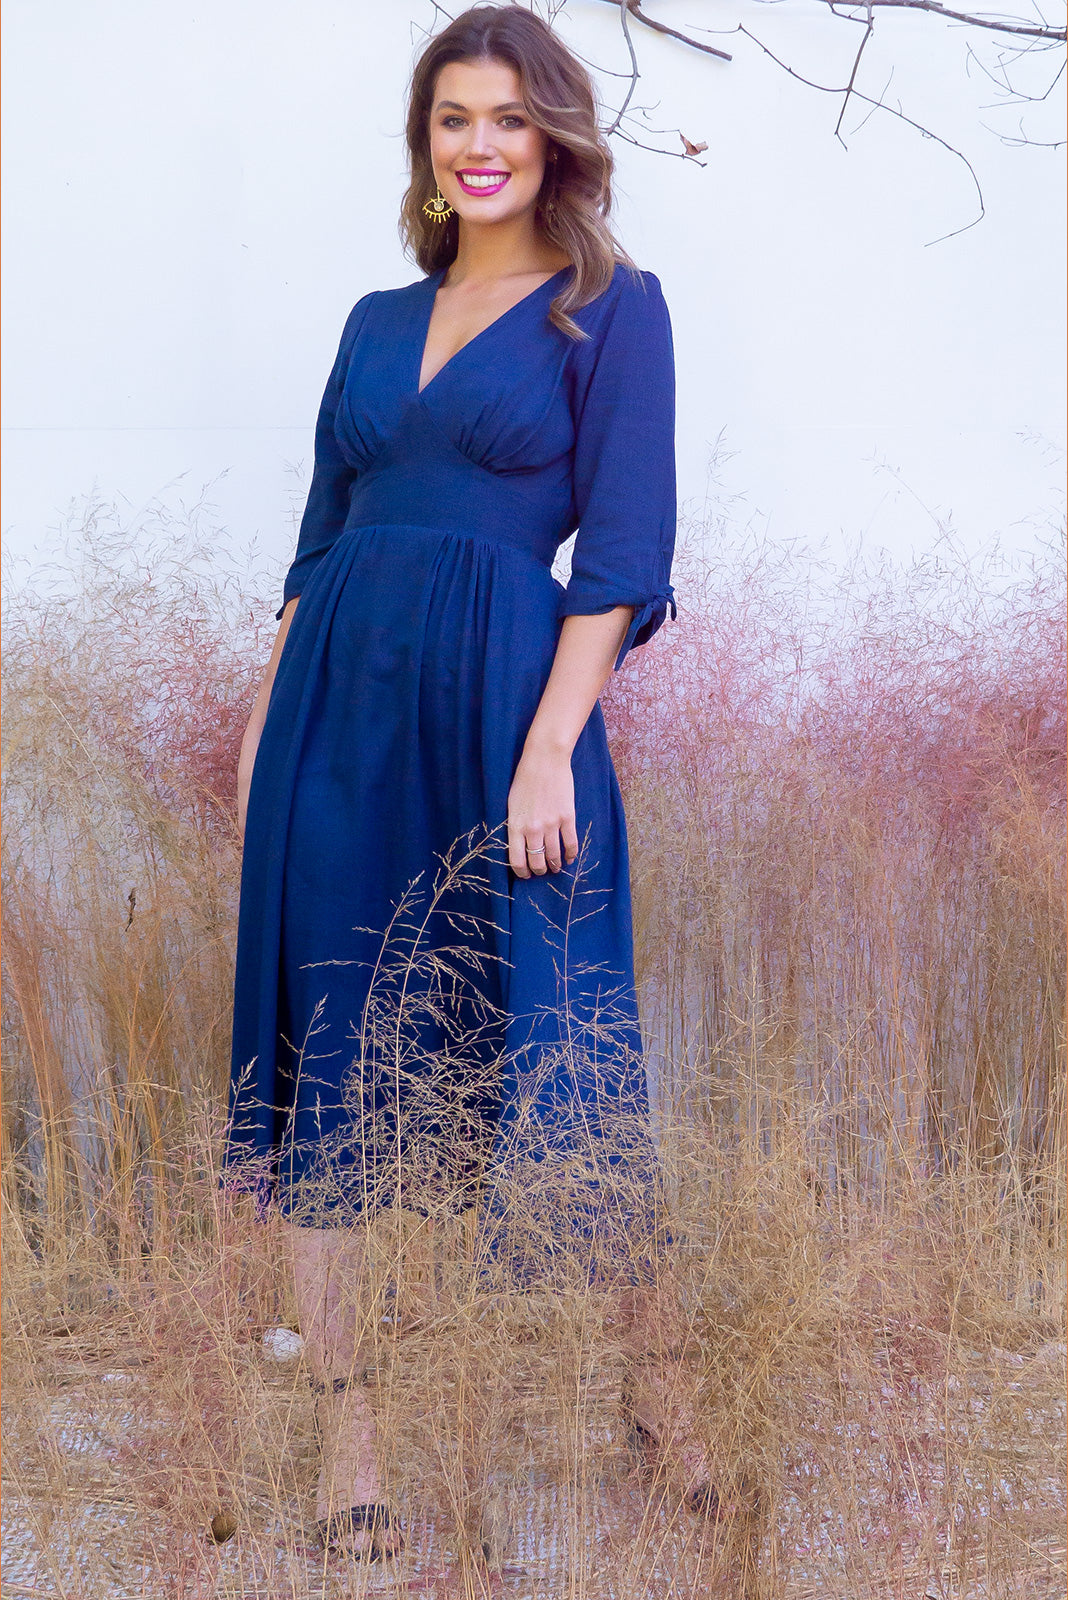 Henrietta French Navy Midi Dress - Women's Navy linen midi dress with pockets. Perfect for maternity, plus size, curvy, tall, petite, breastfeeding. Linen/Rayon blend. Fitted waist and flowing skirt. Vintage style. Perfect wardrobe staple. Great for day to day, night out, date night etc. Designed in Brisbane Australia